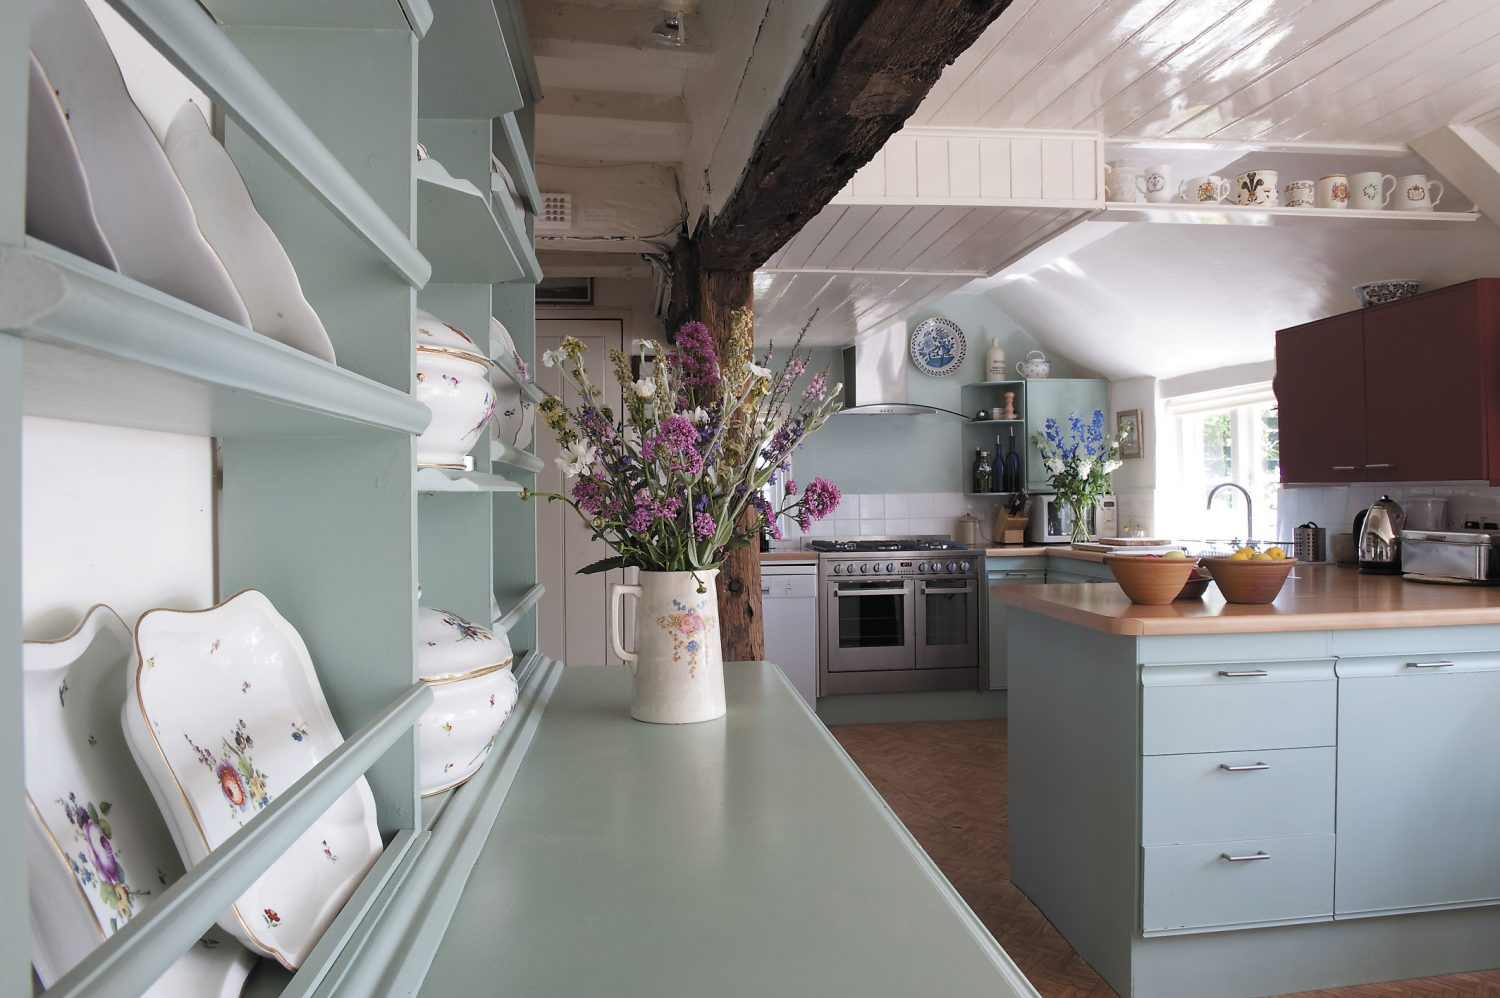 In the kitchen, a painted dresser and units display flowers from the garden